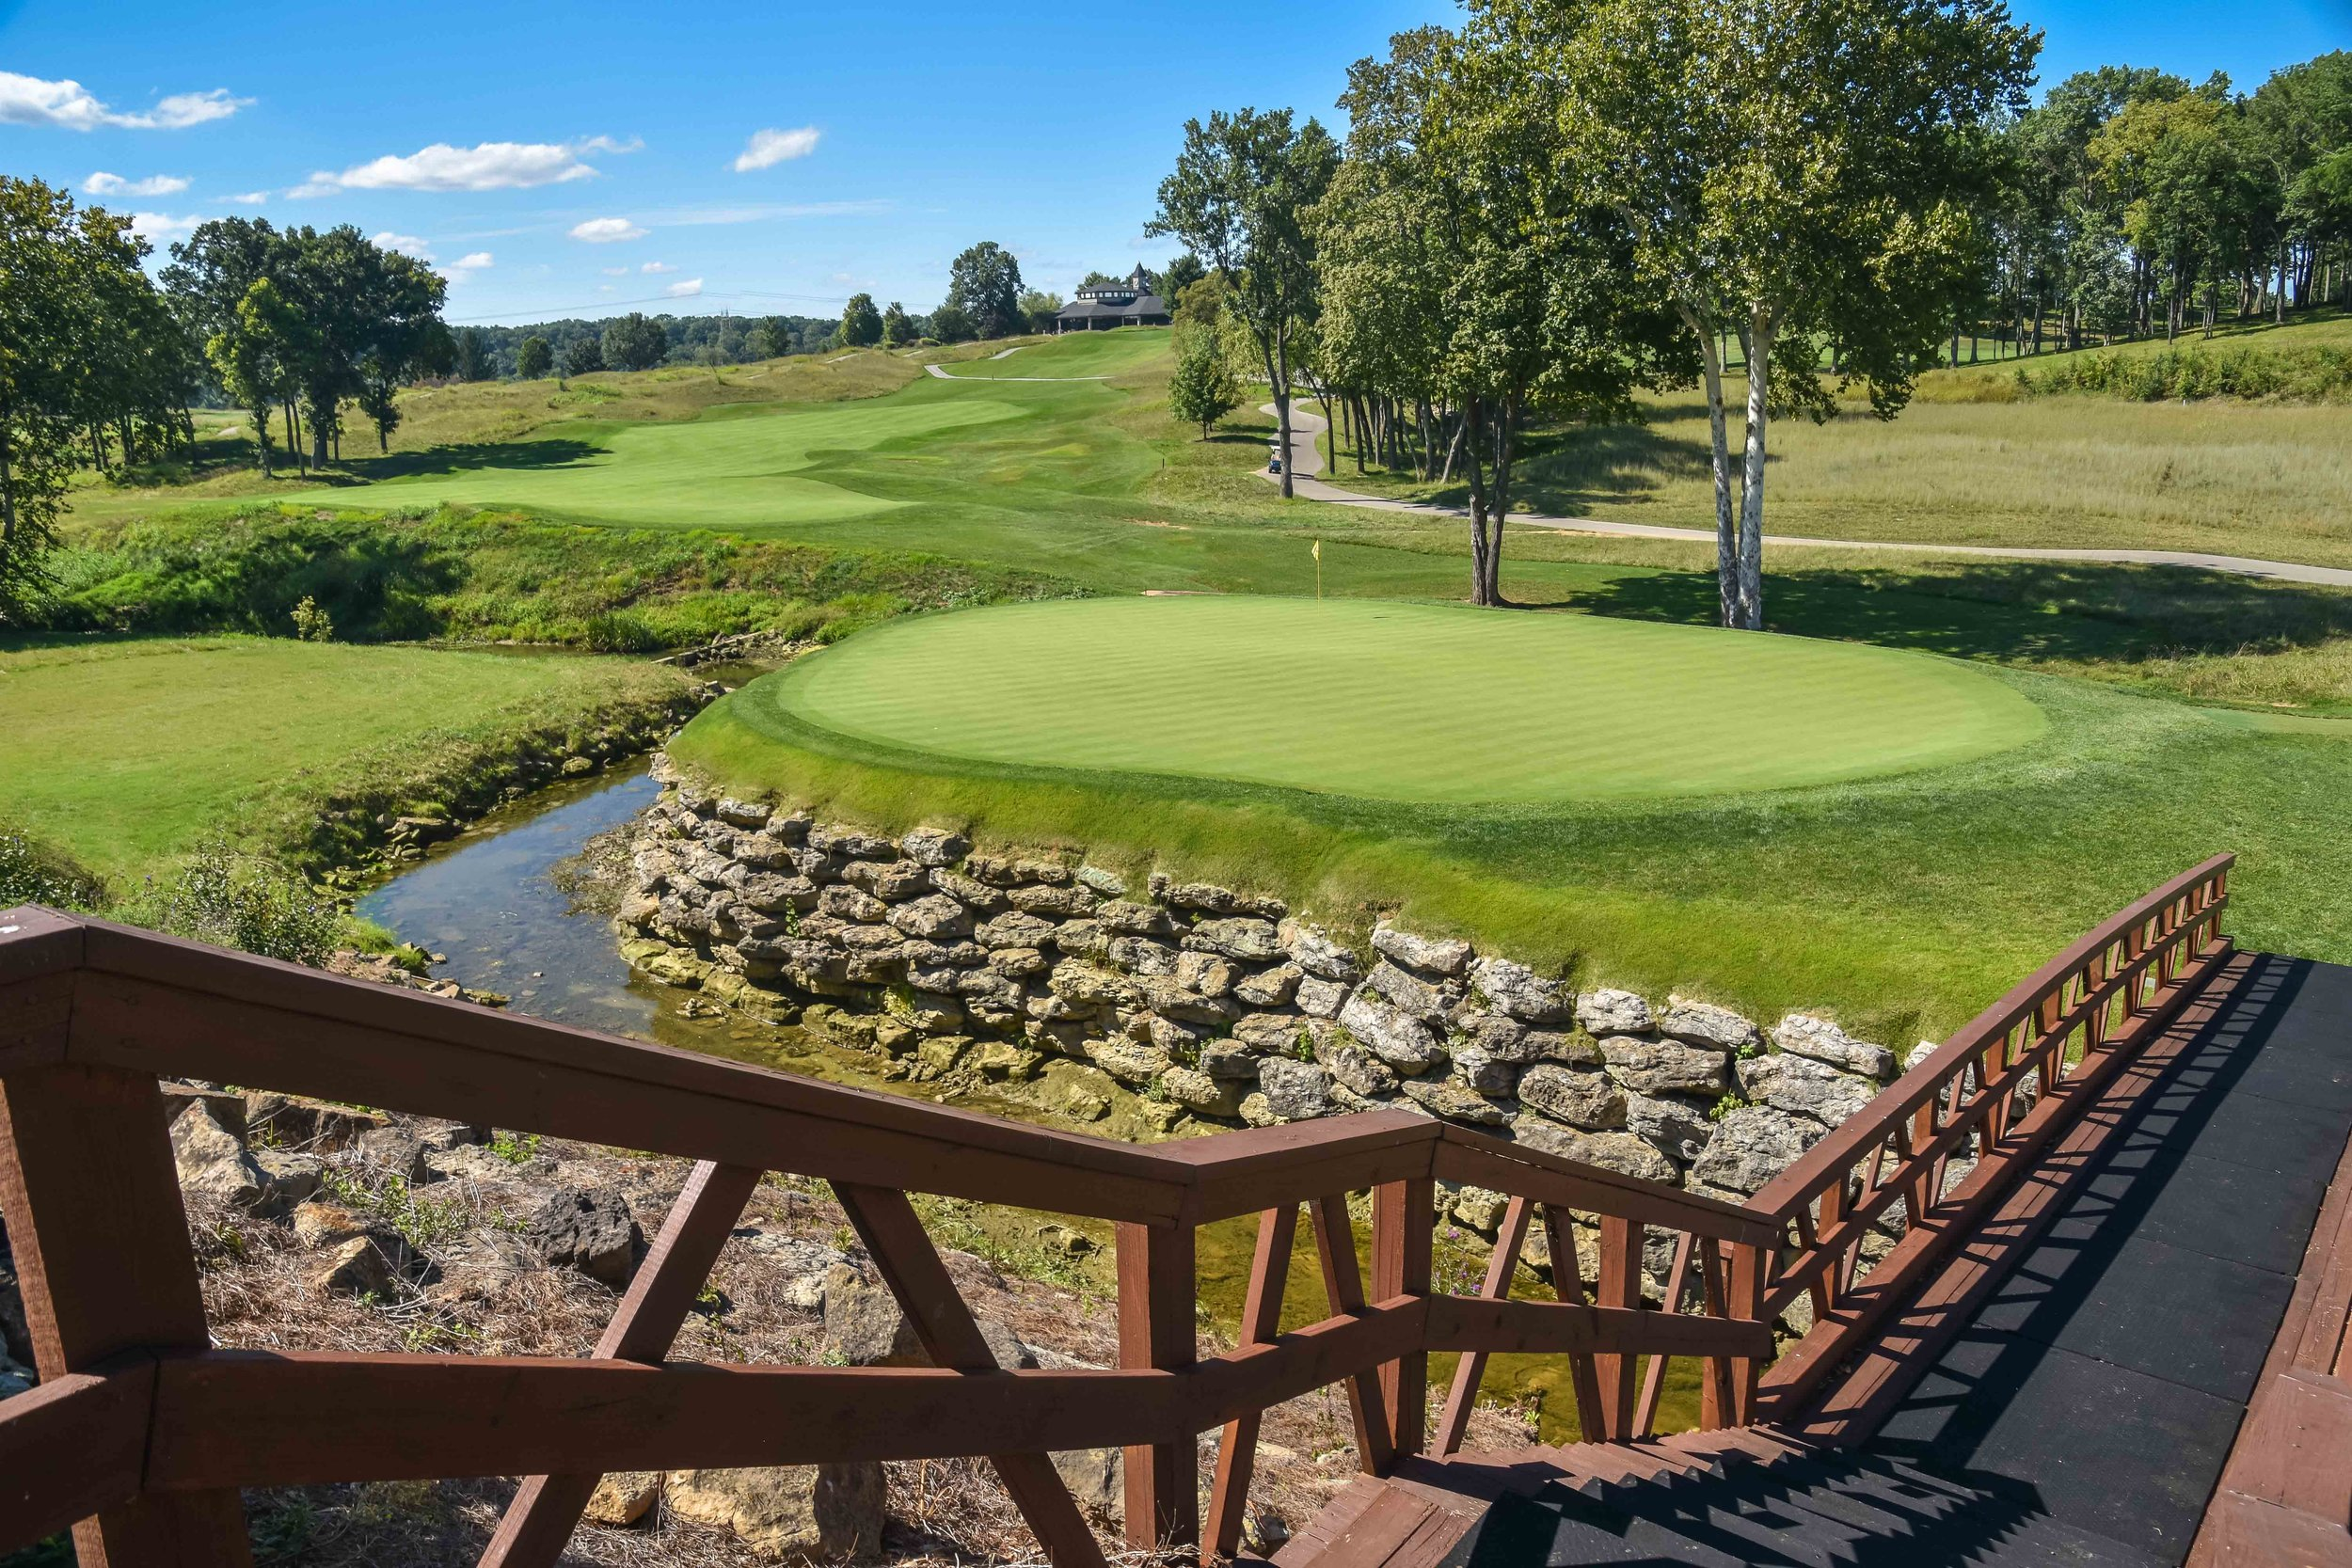 The island green 13th hole at Valhalla.